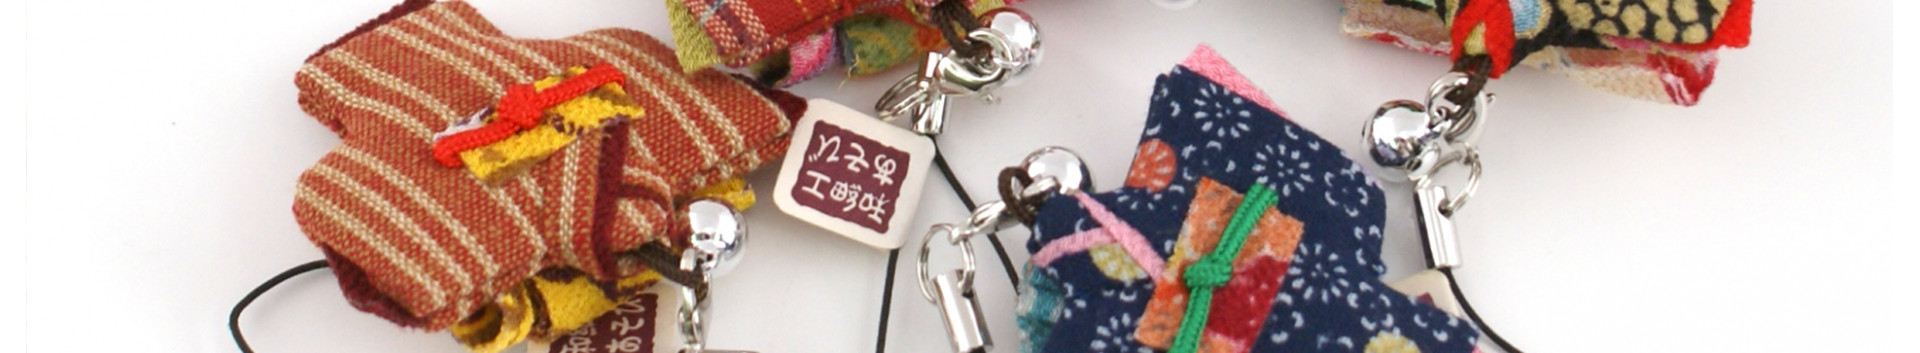 Amulets and accessories from Japan